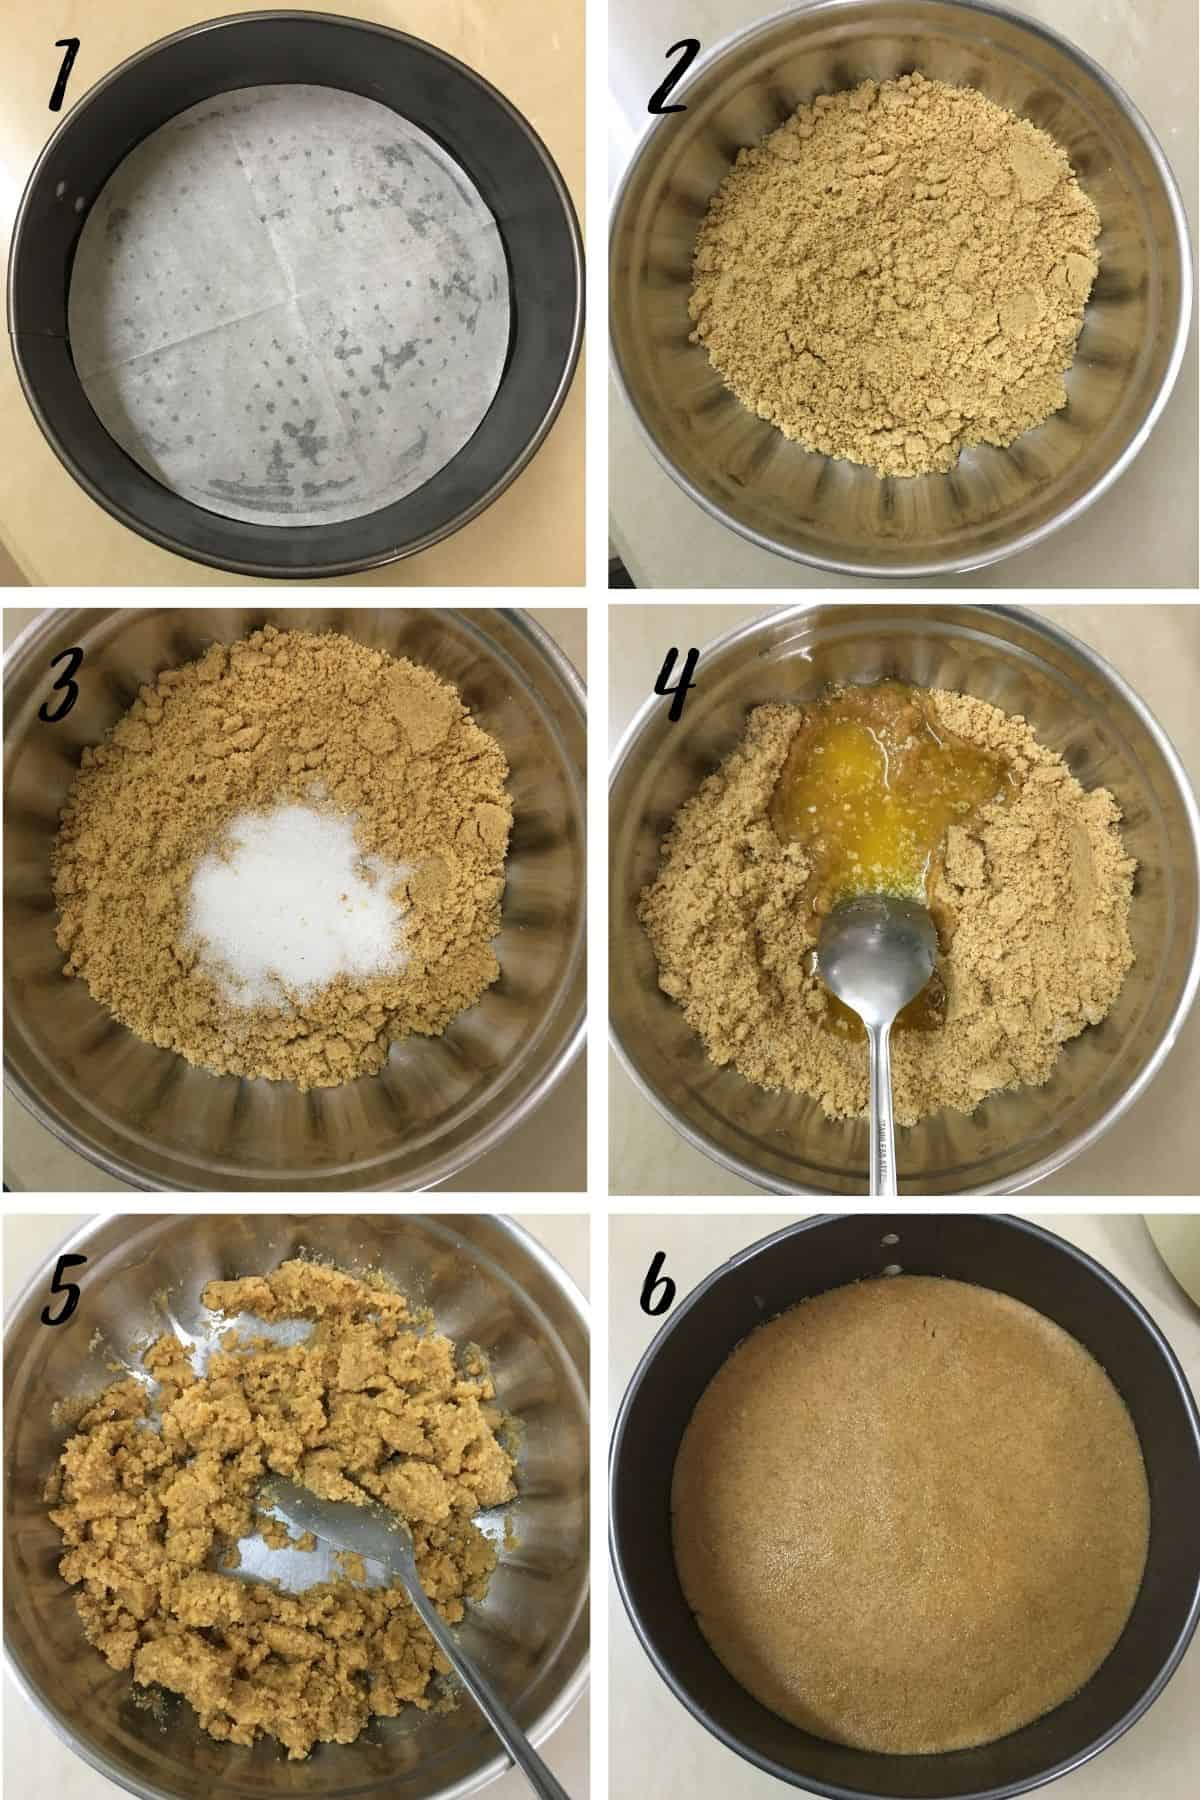 A poster of 6 images showing how to prepare cheesecake crust